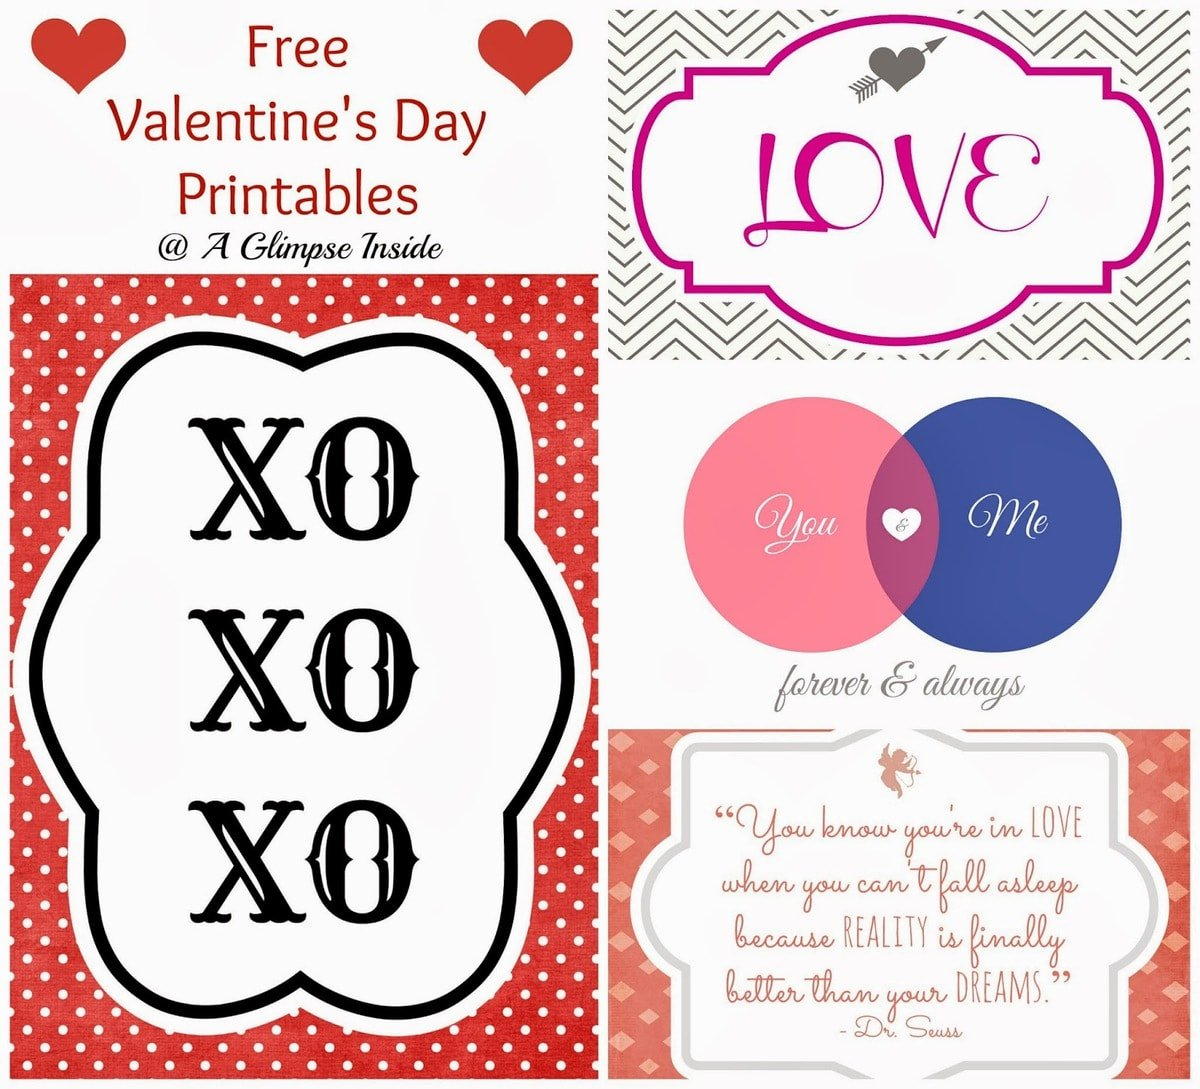 A close up of a printable Valentines